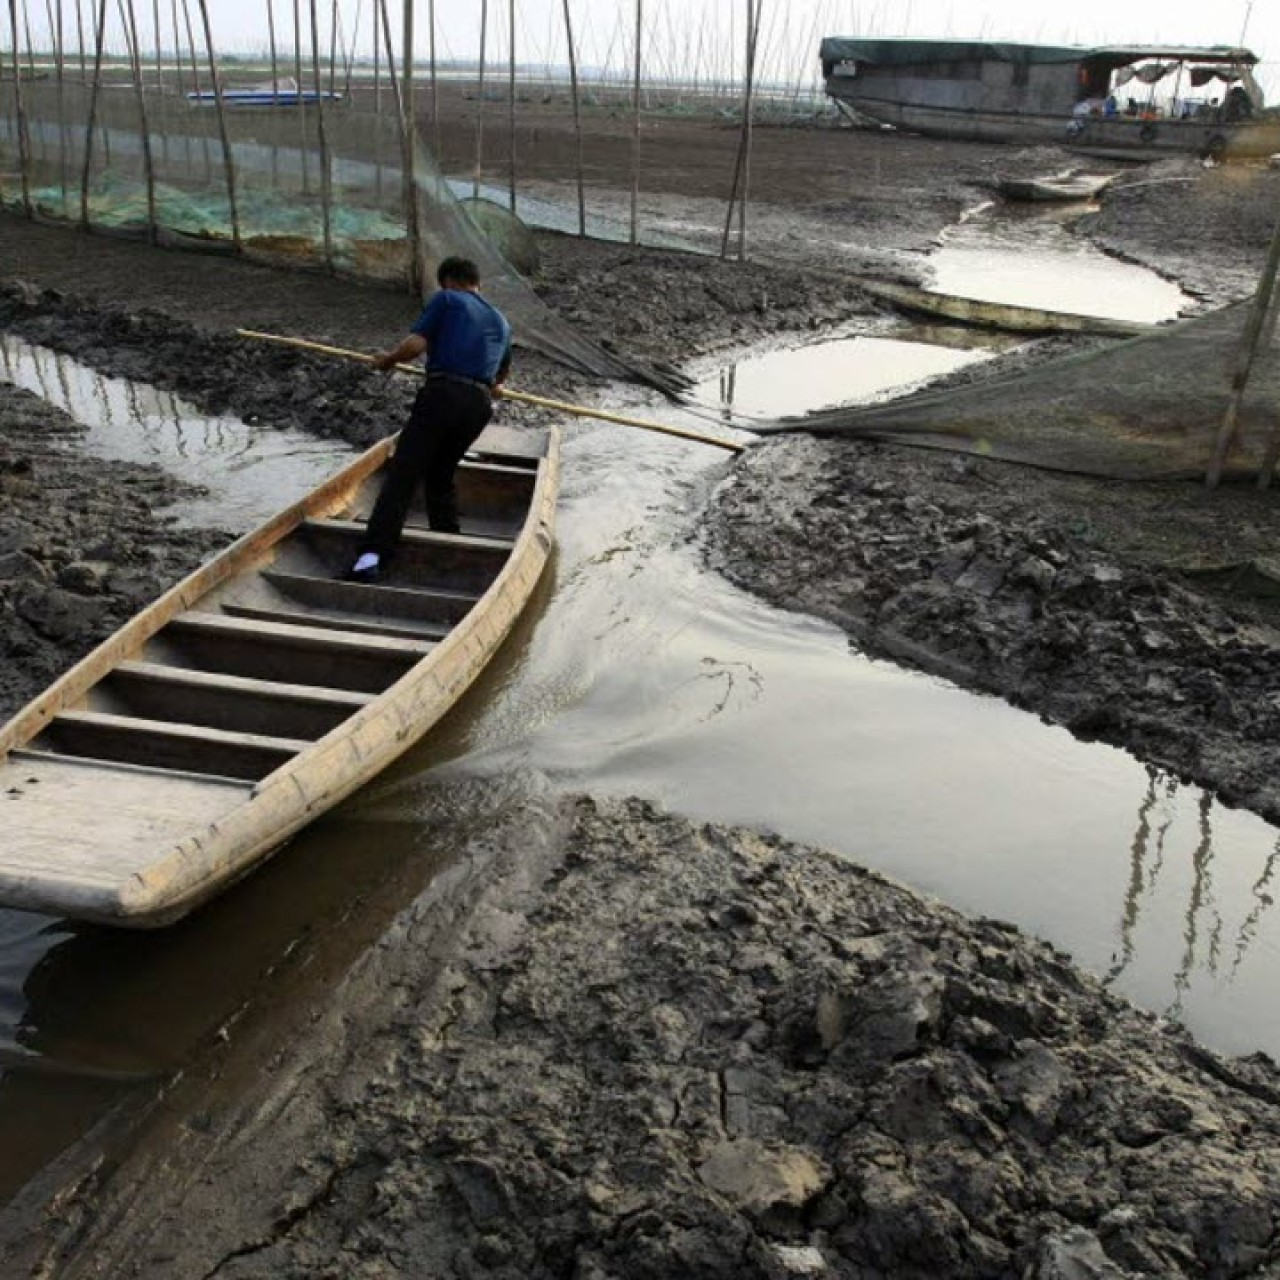 Yangtze lakes drying up as China's water crisis spreads